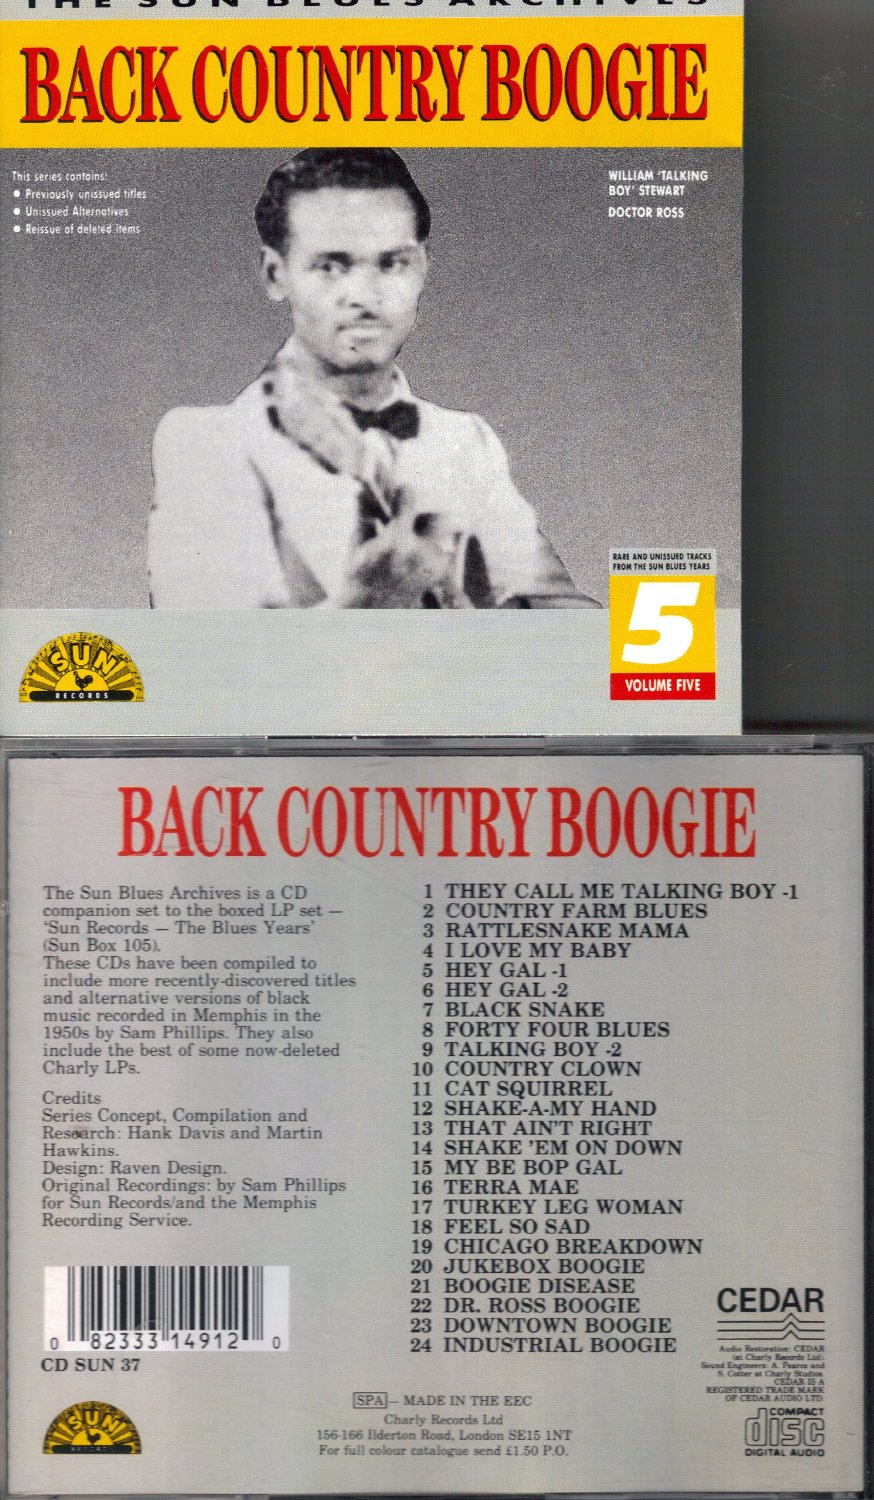 Back Country Boogie: The Sun Blues Archives, Rare and Unissued Tracks From the Sun Blues Years, Vol. 5